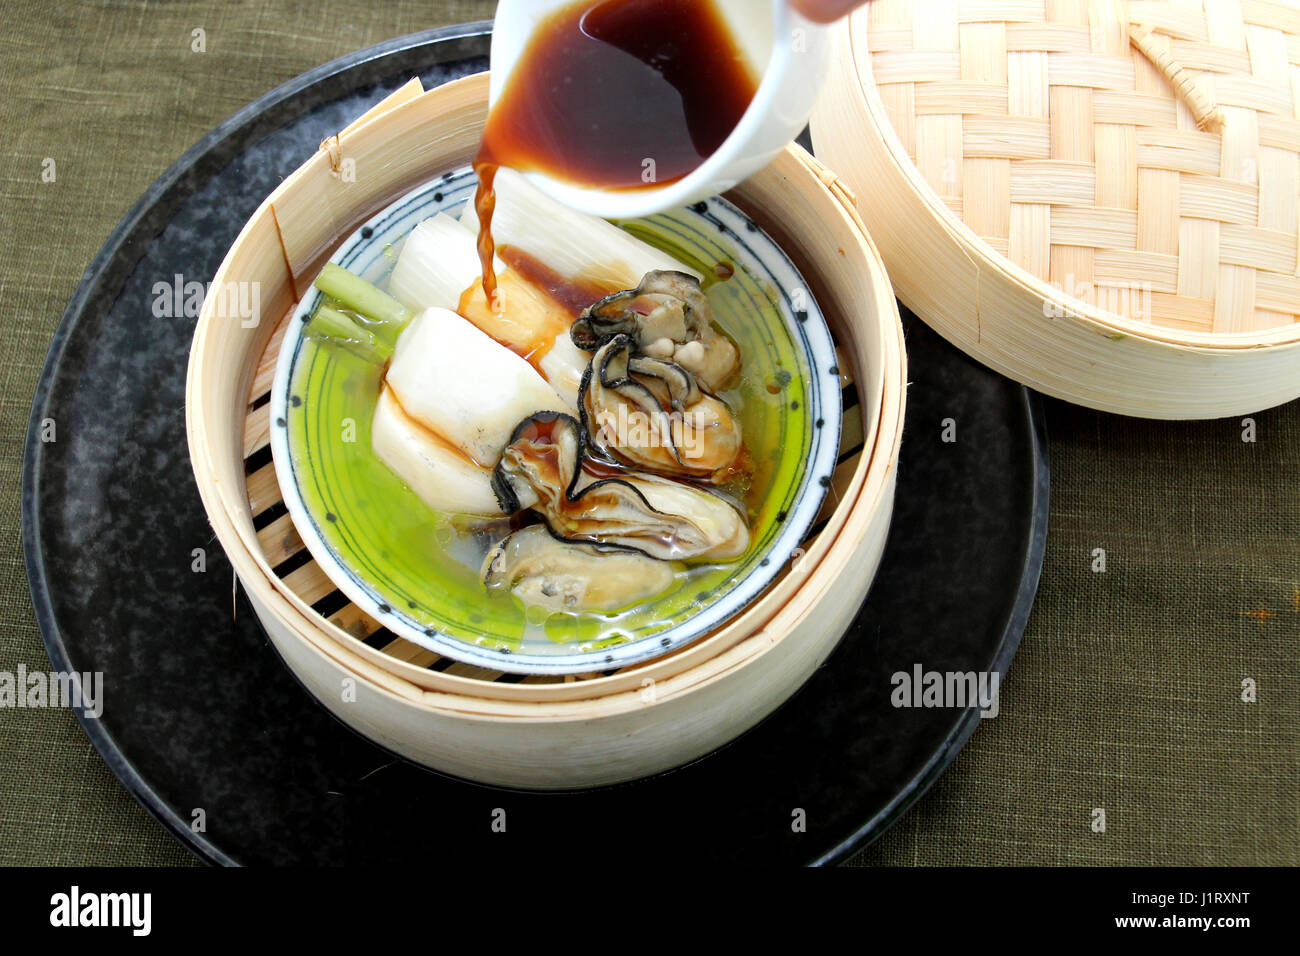 Oyster soup with produce and radish in bamboo tray - Stock Image